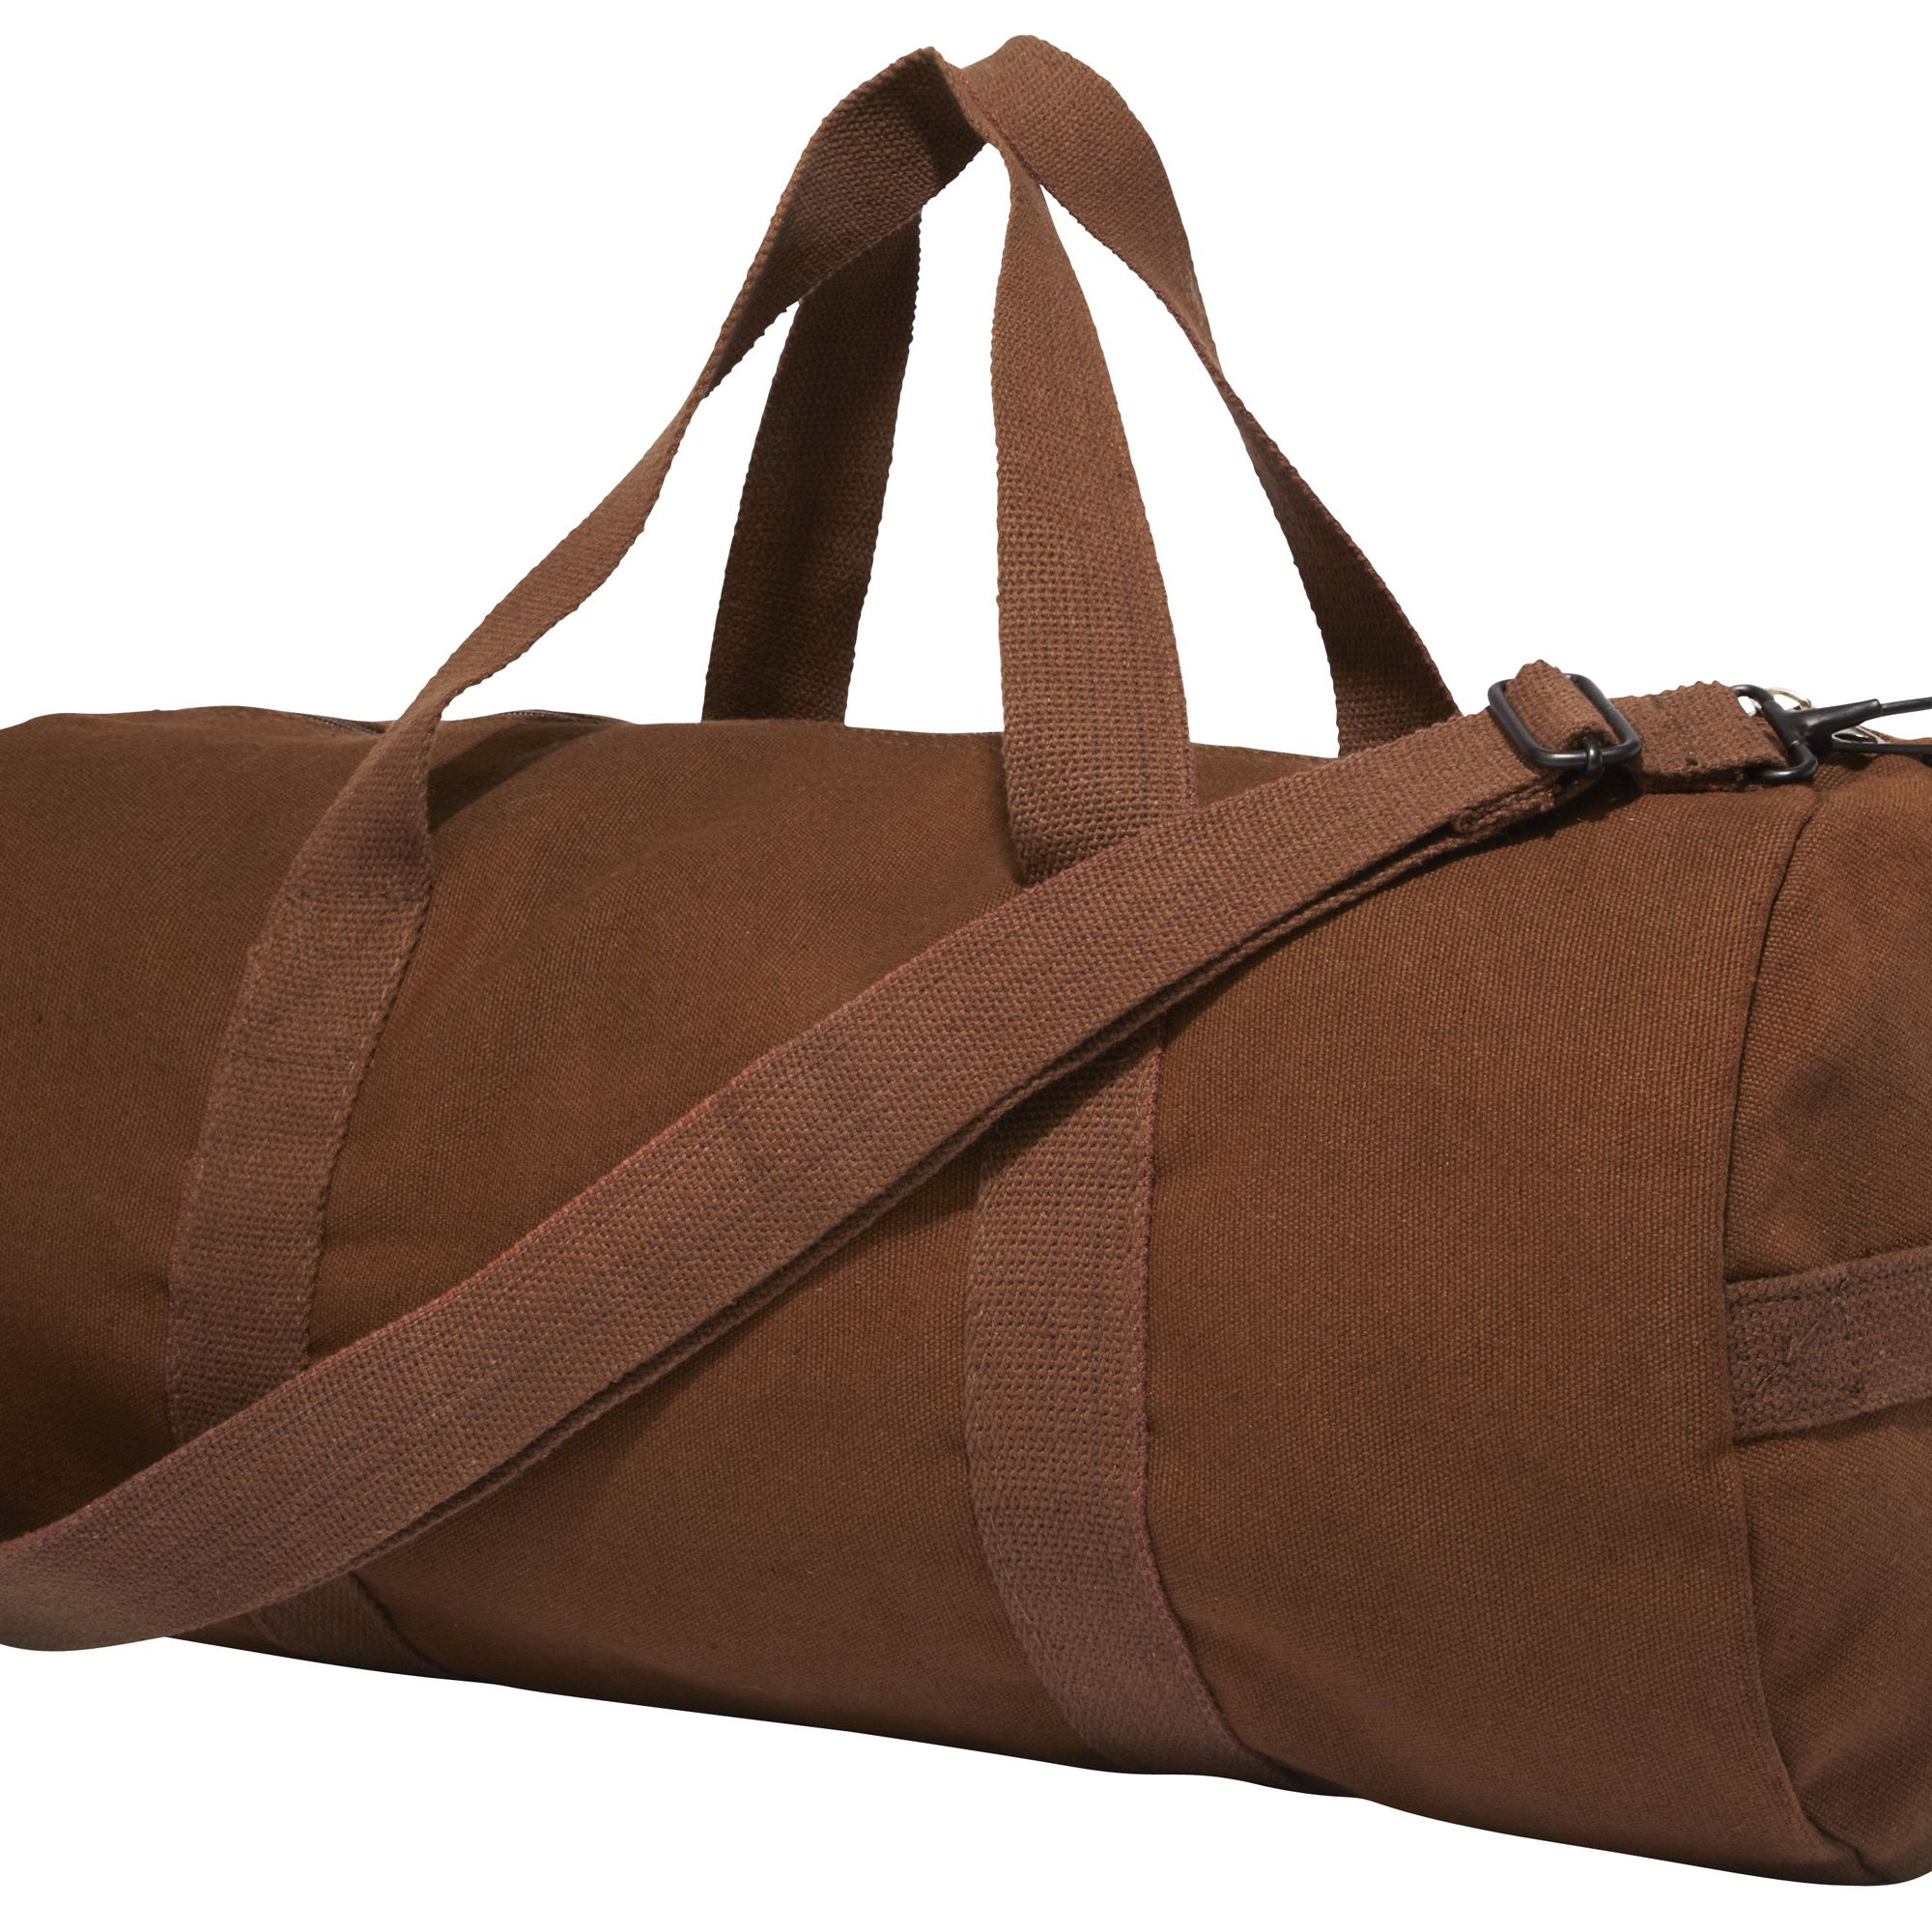 """""""My army surplus duffel. I've had it forever.""""<strong>Uncle Sam's Army Navy Outfitters </strong>bag, $22.95, similar styles available at <a target=""""_blank"""" href=""""http://www.armynavydeals.com/asp/Default.asp?"""">armynavydeals.com</a>."""